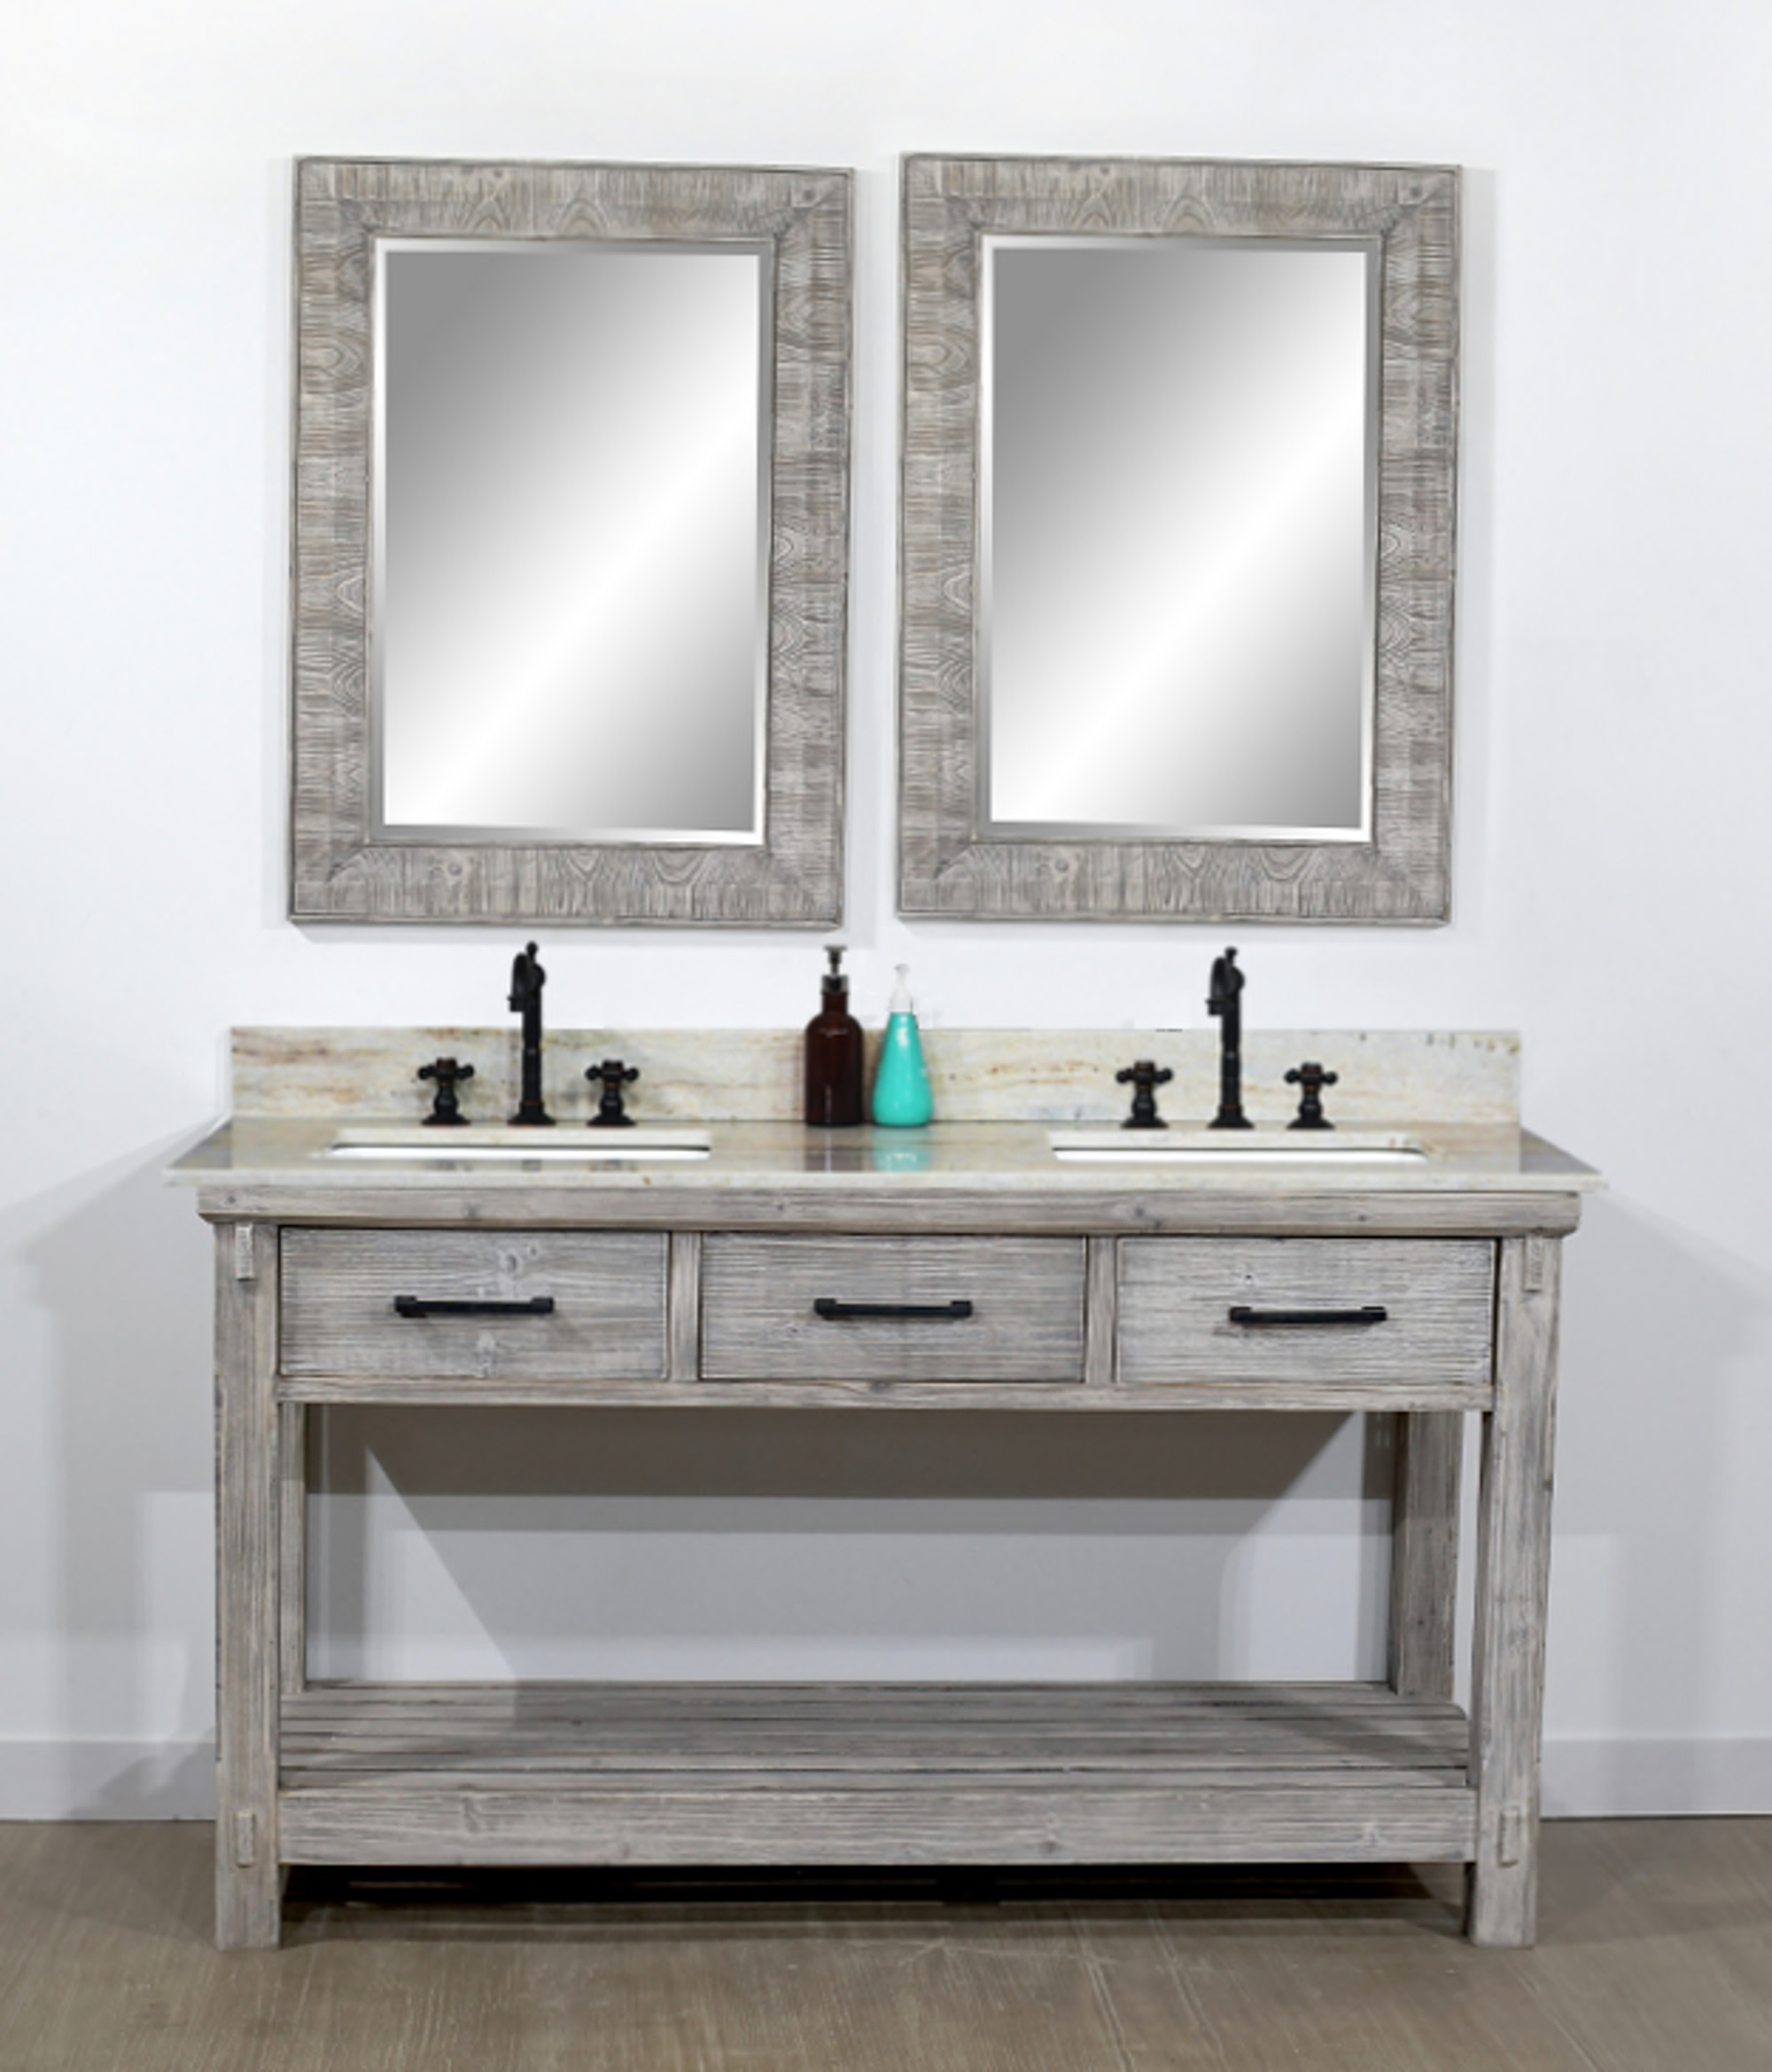 "60"" Rustic Solid Fir Double Sink Bathroom Vanity in Grey Driftwood Finish - No Faucet with Countertop Options"